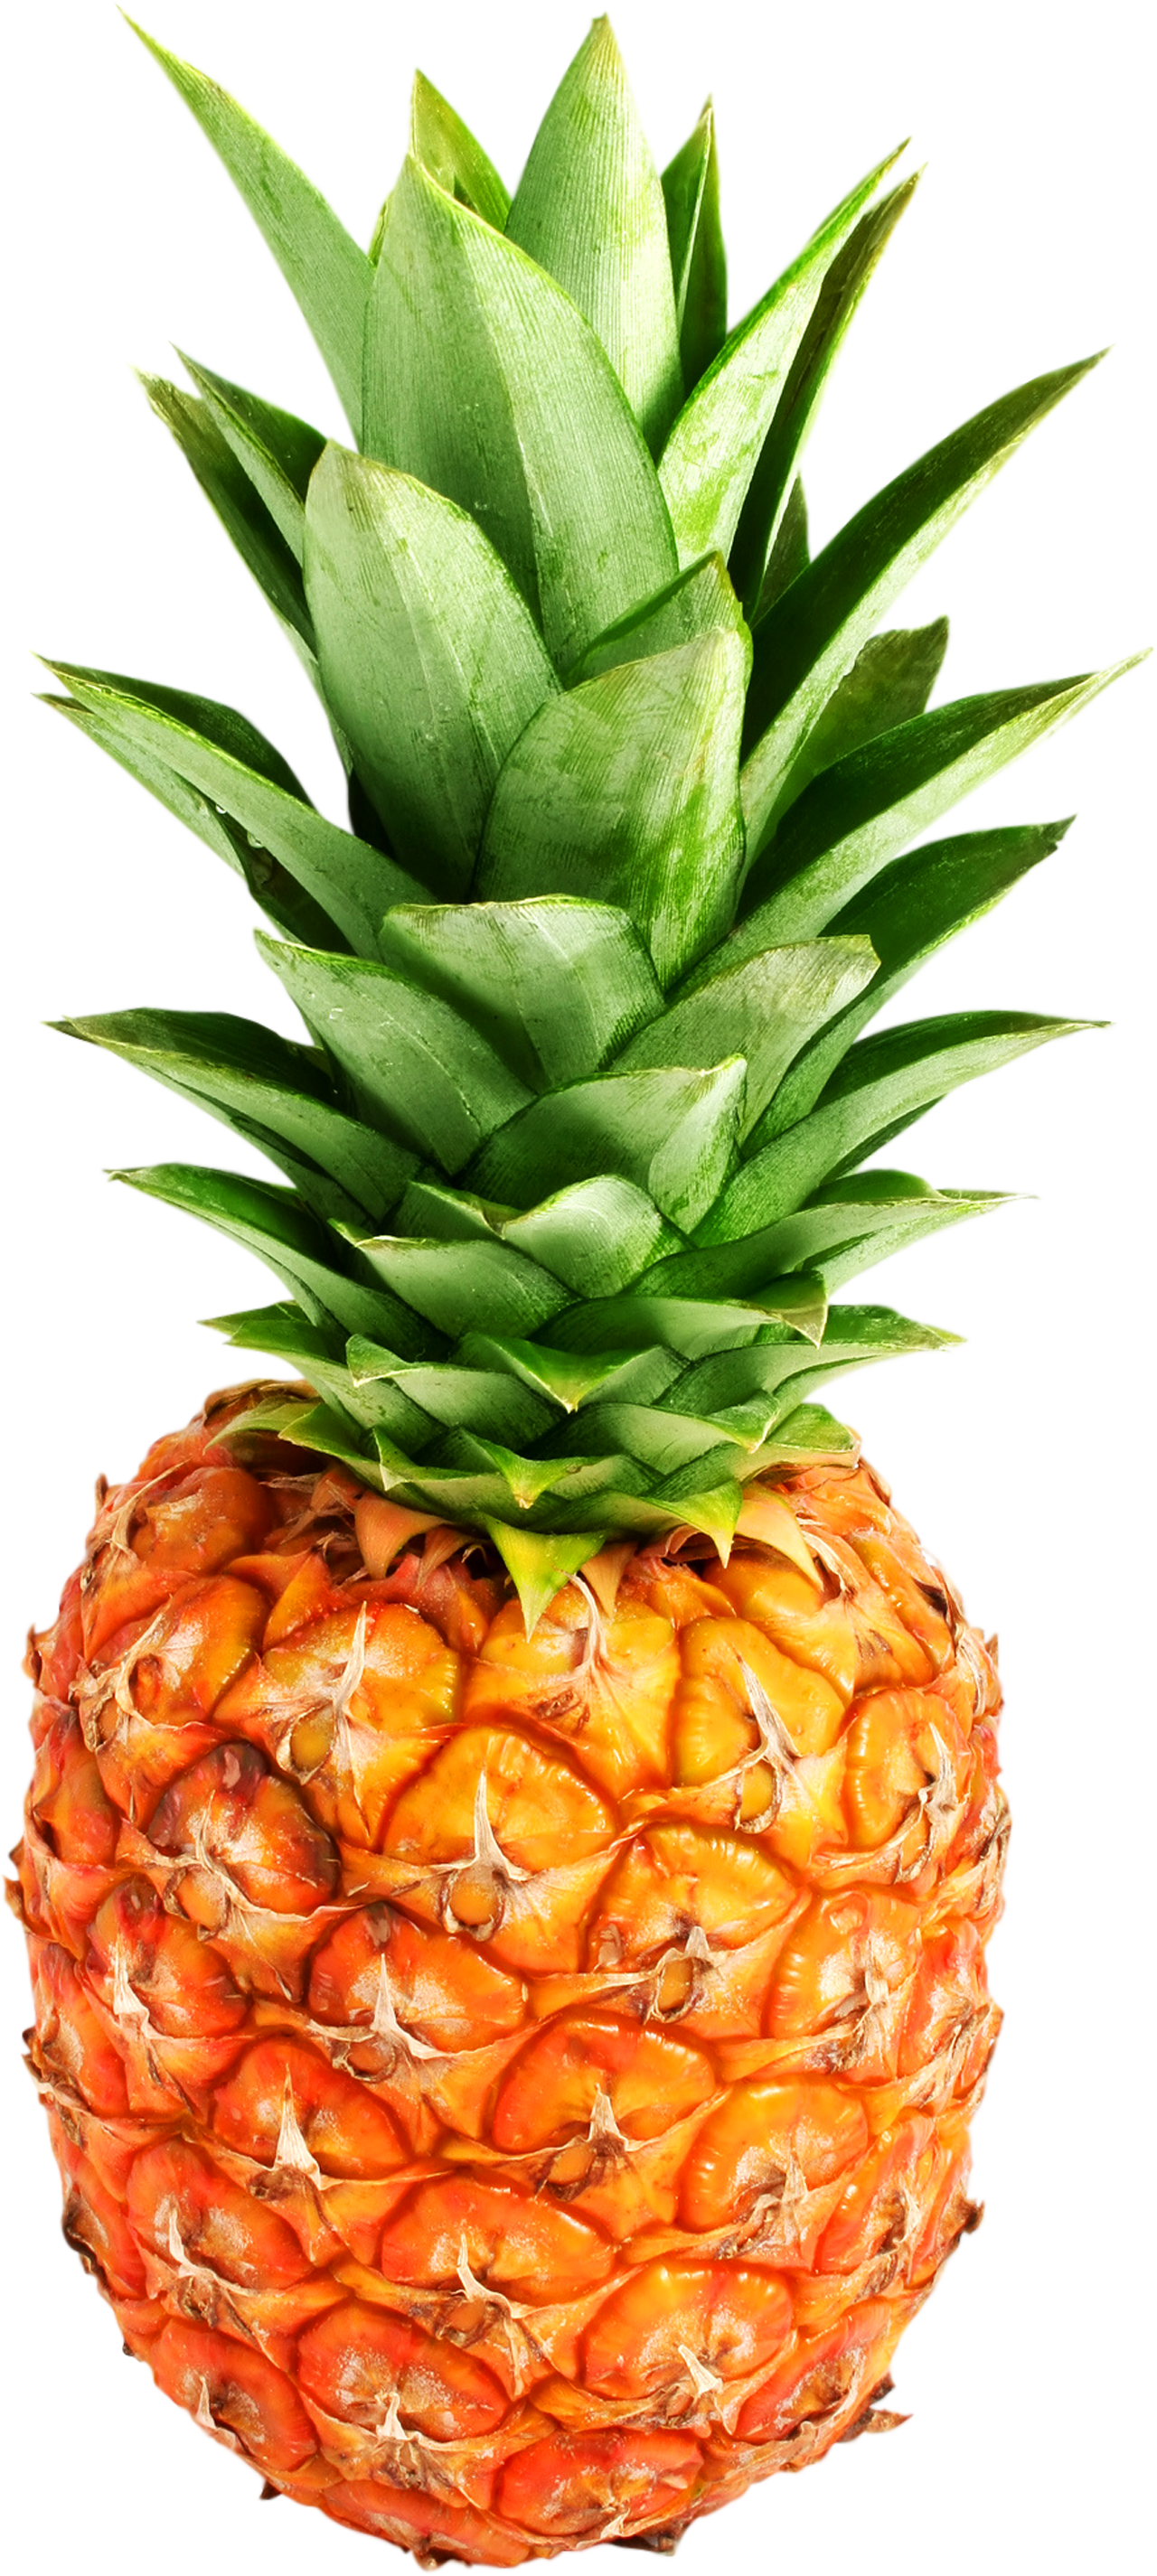 Pineapple PNG image, free download image with transparent